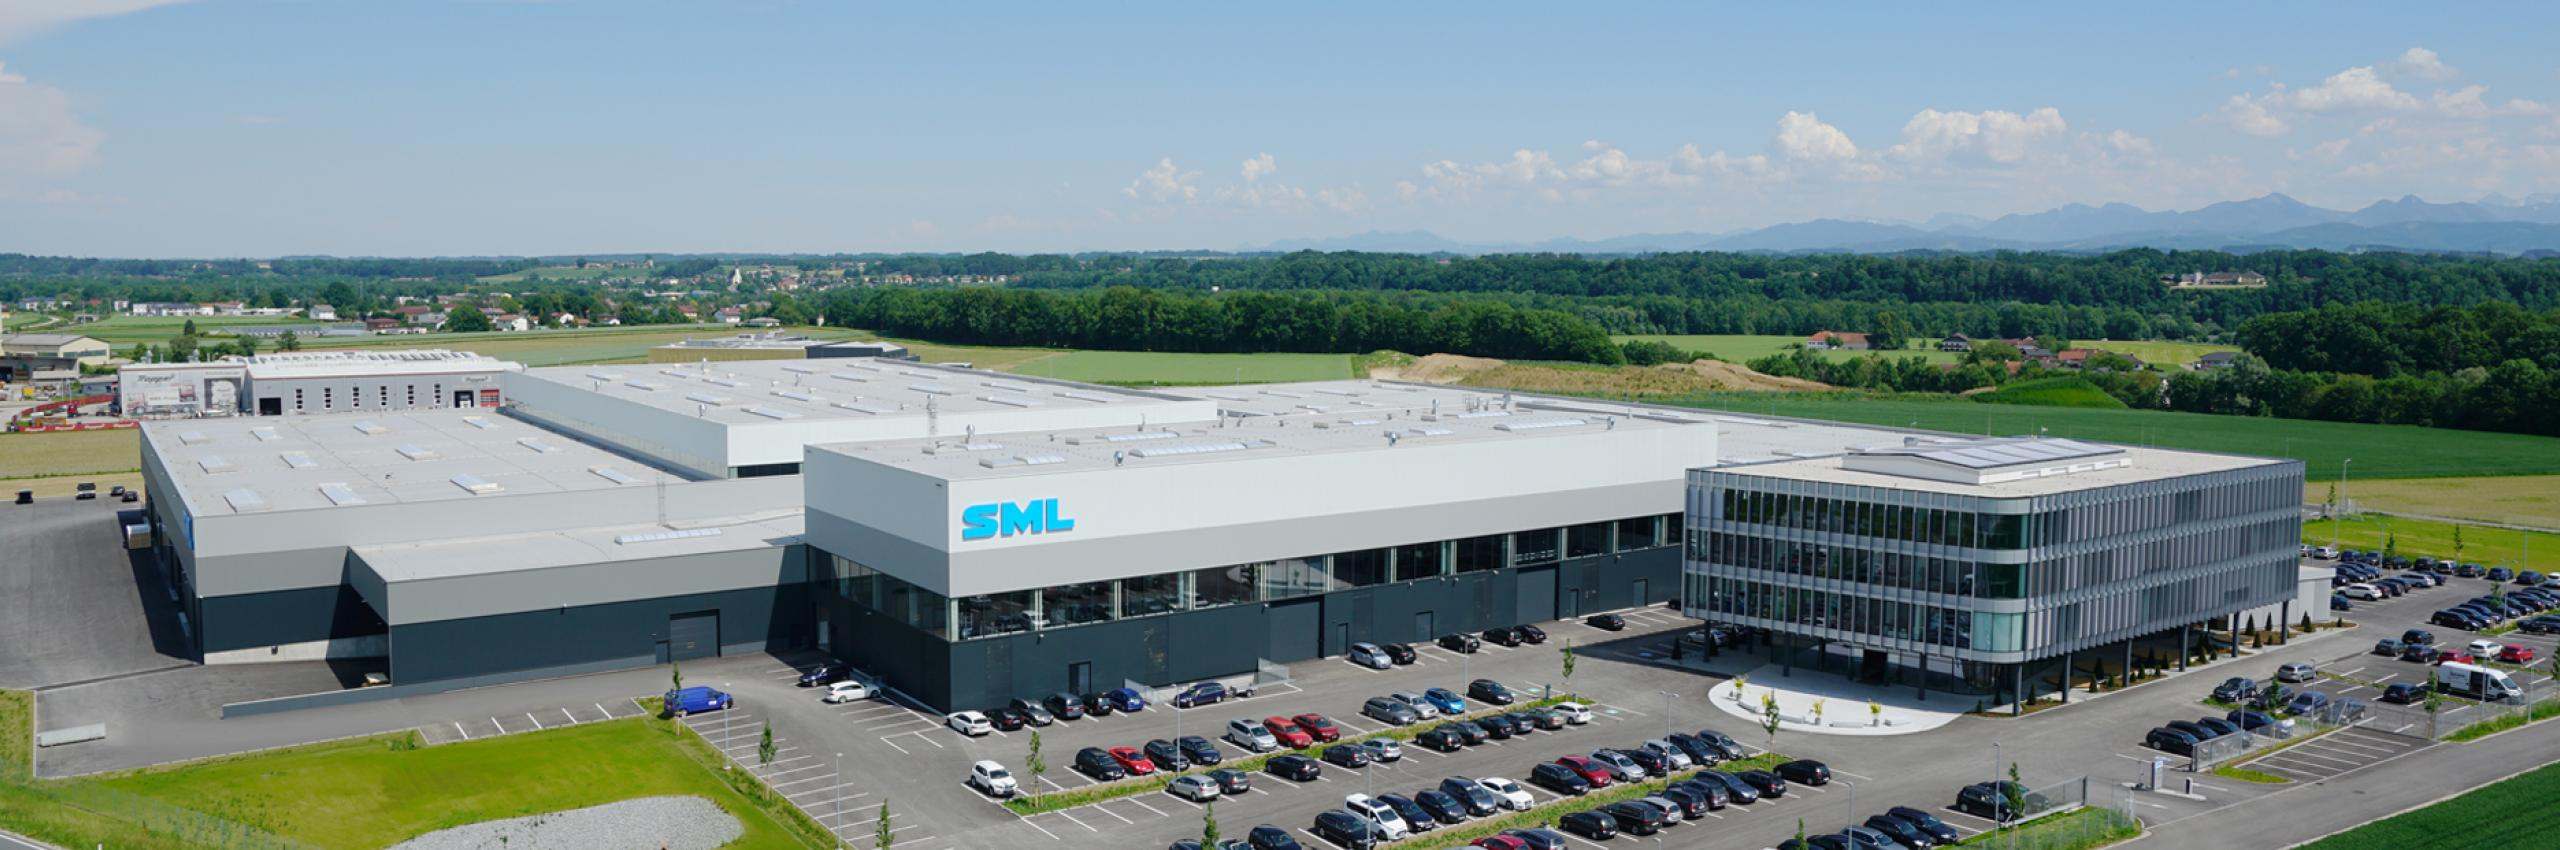 SML Headquarters Redlham, Austria